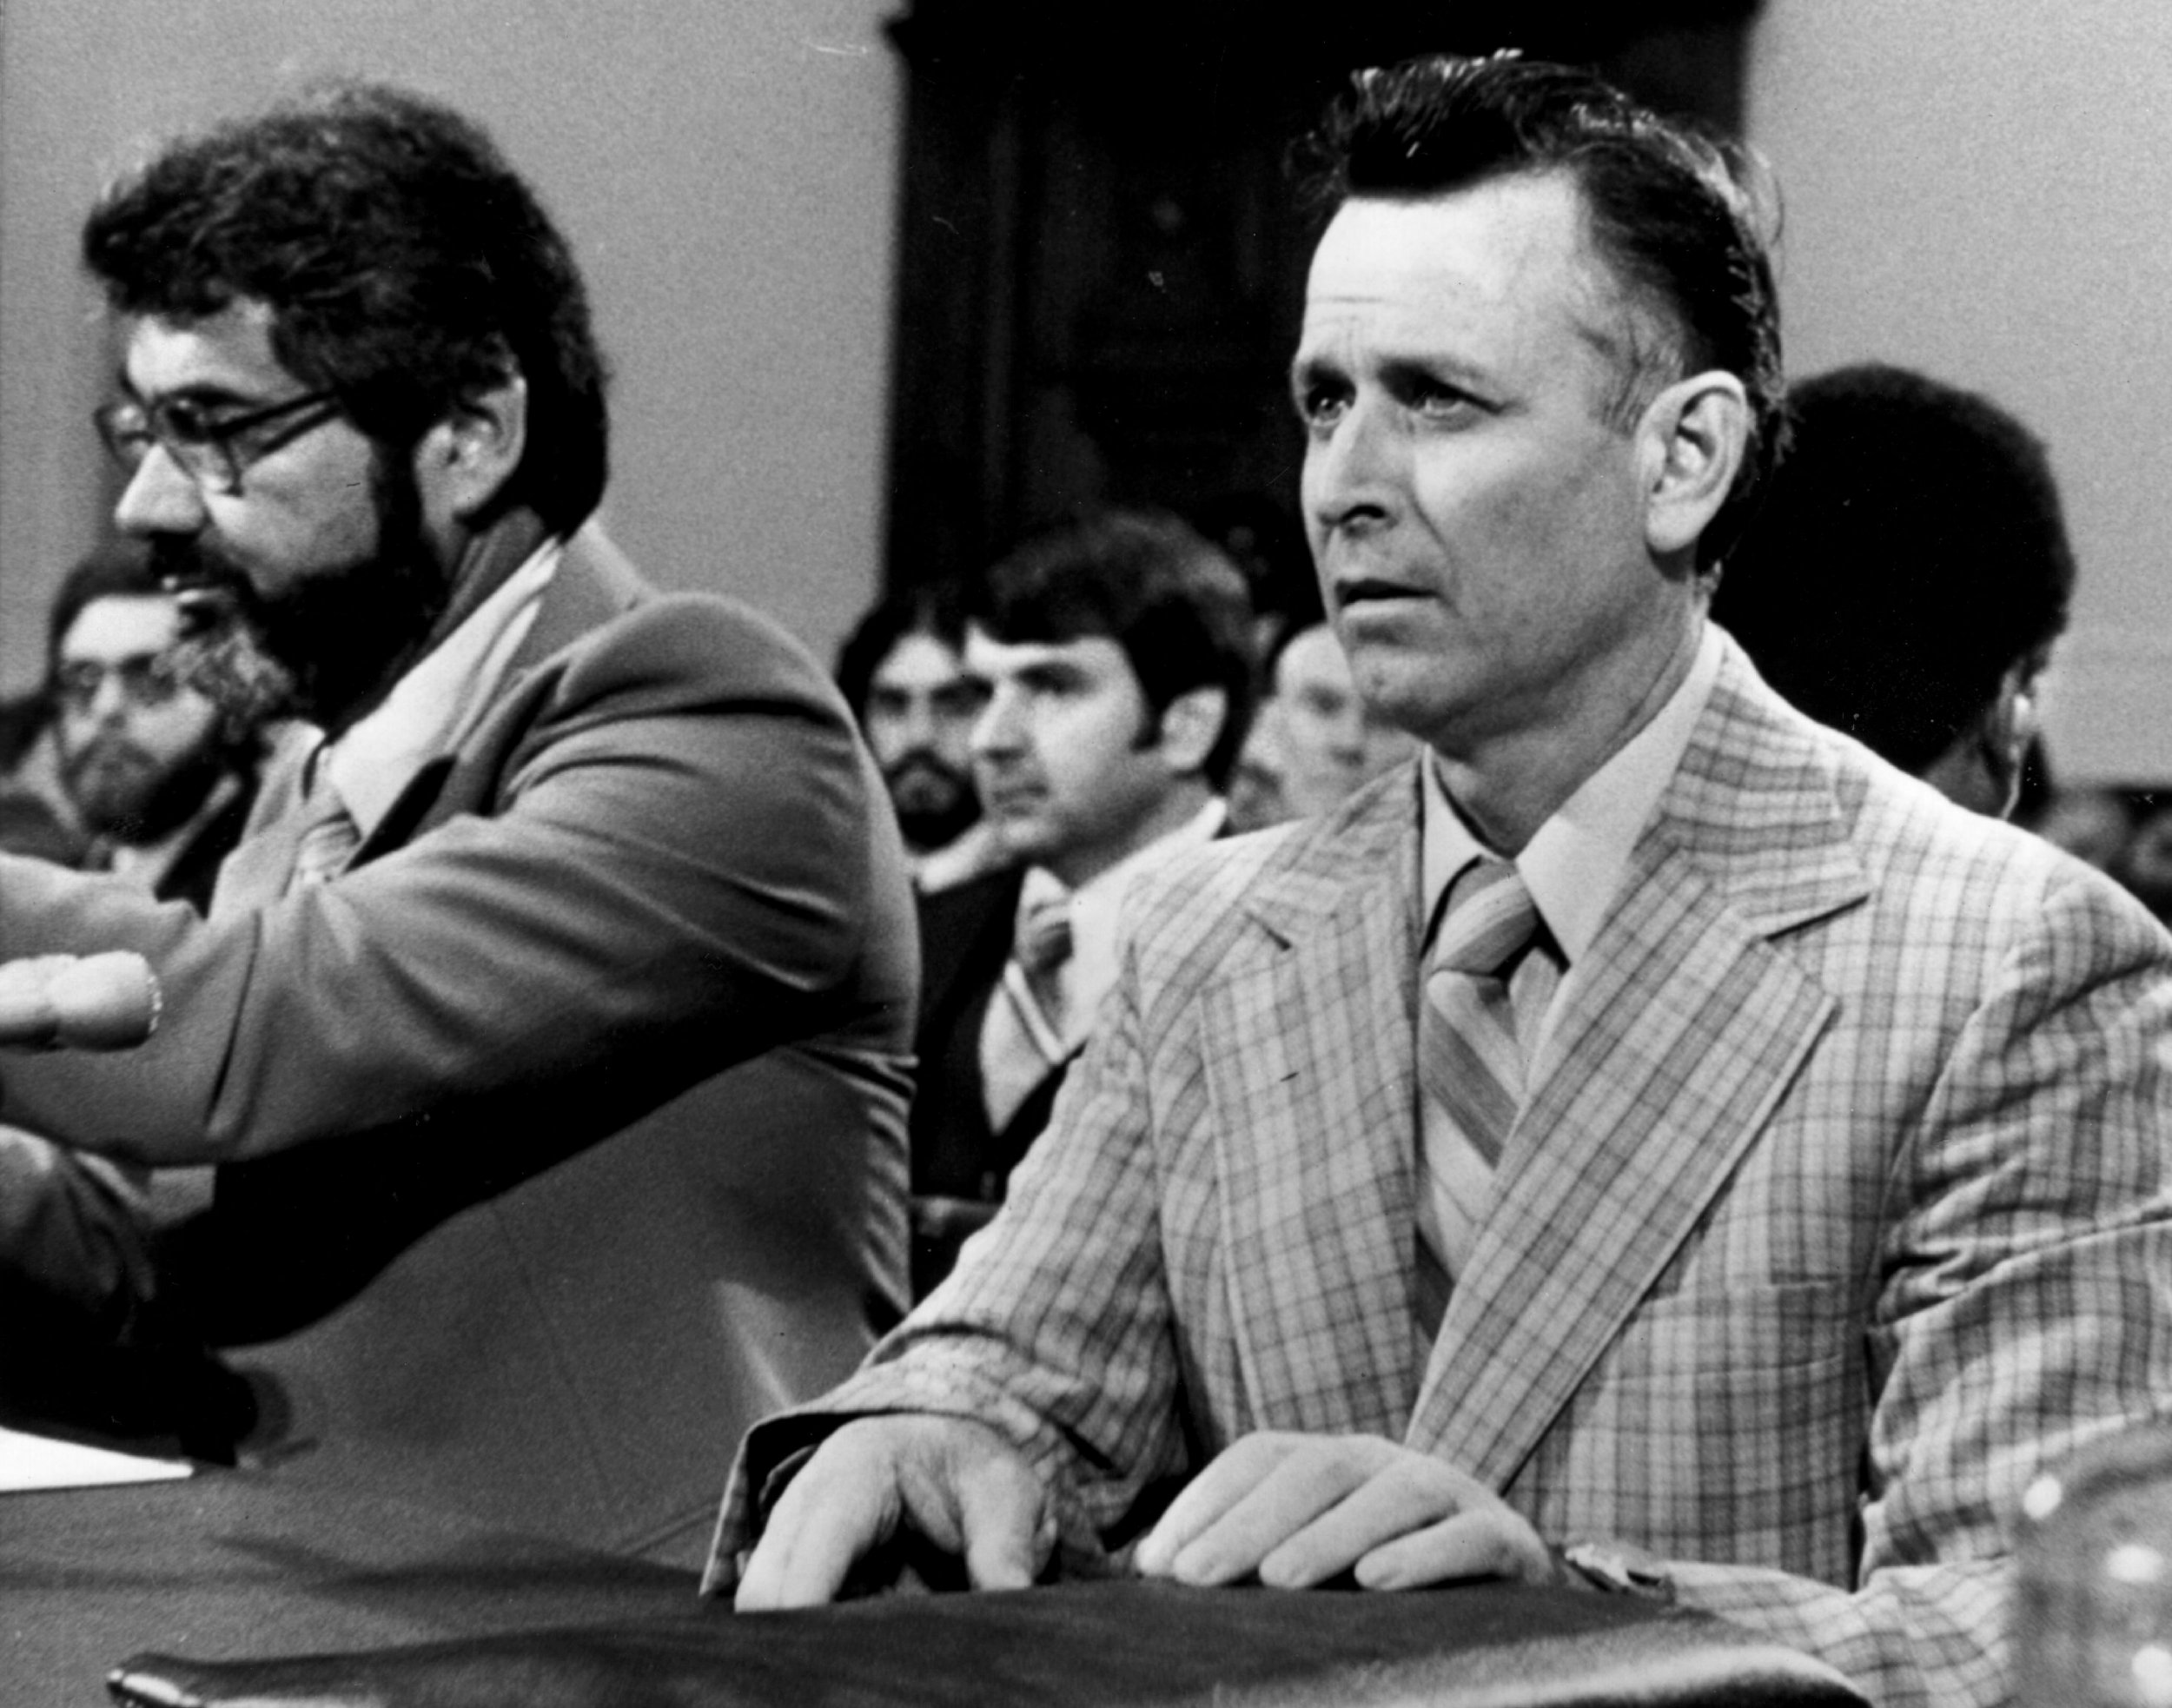 Martin Luther Kings Killer: Who Is James Earl Ray? The Convicted Assassin Of Dr